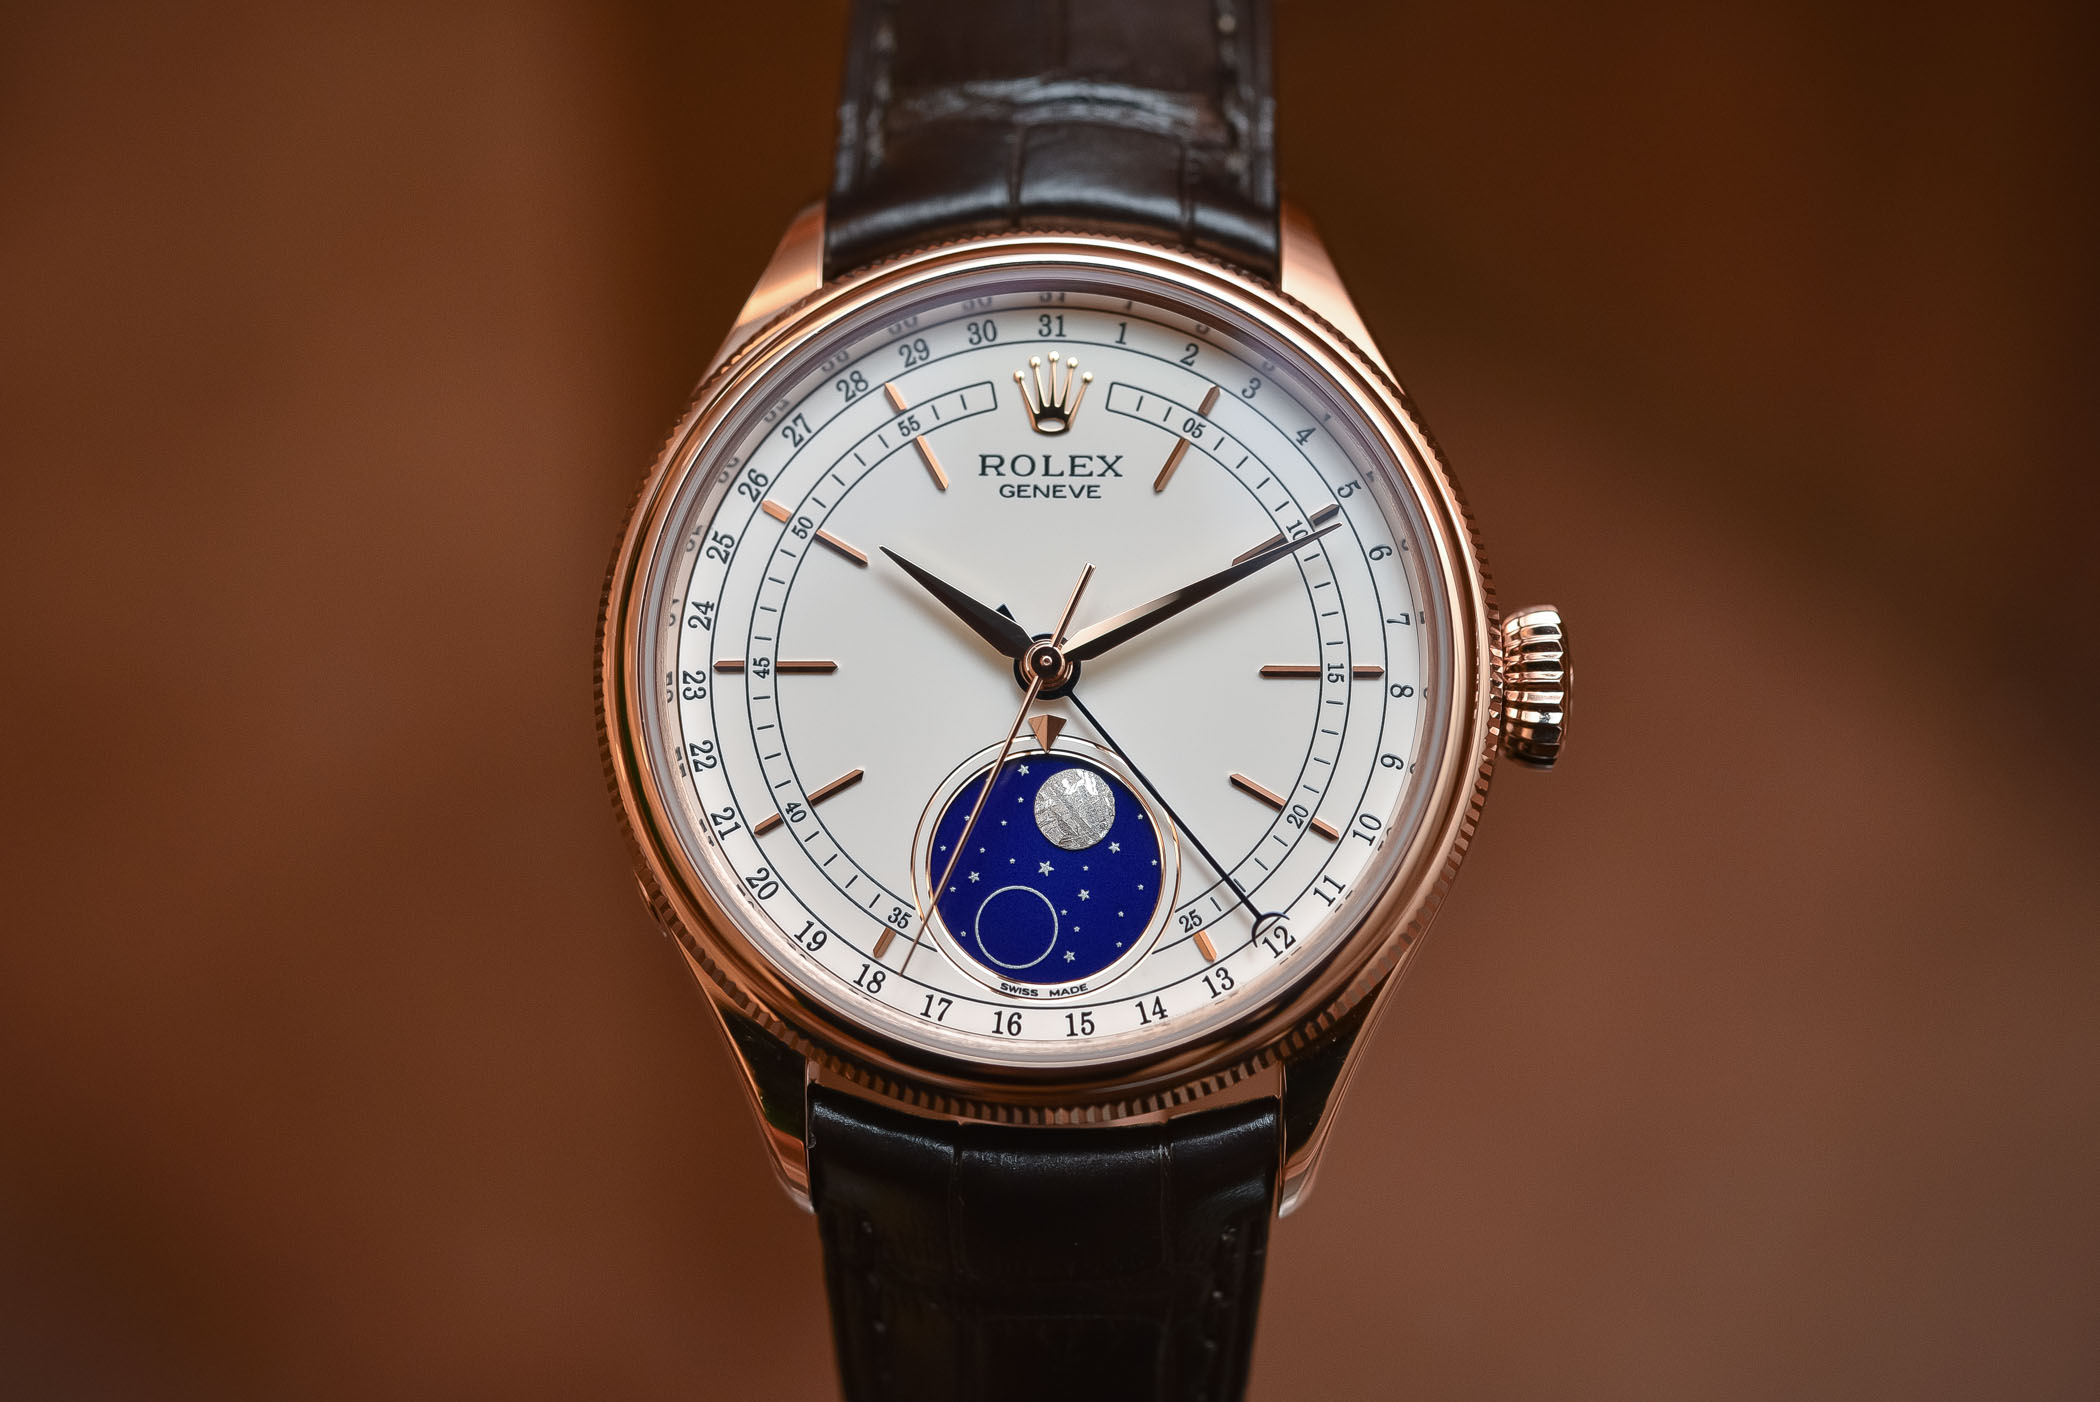 Rolex Cellini Moonphase 50535 - Baselworld 2017